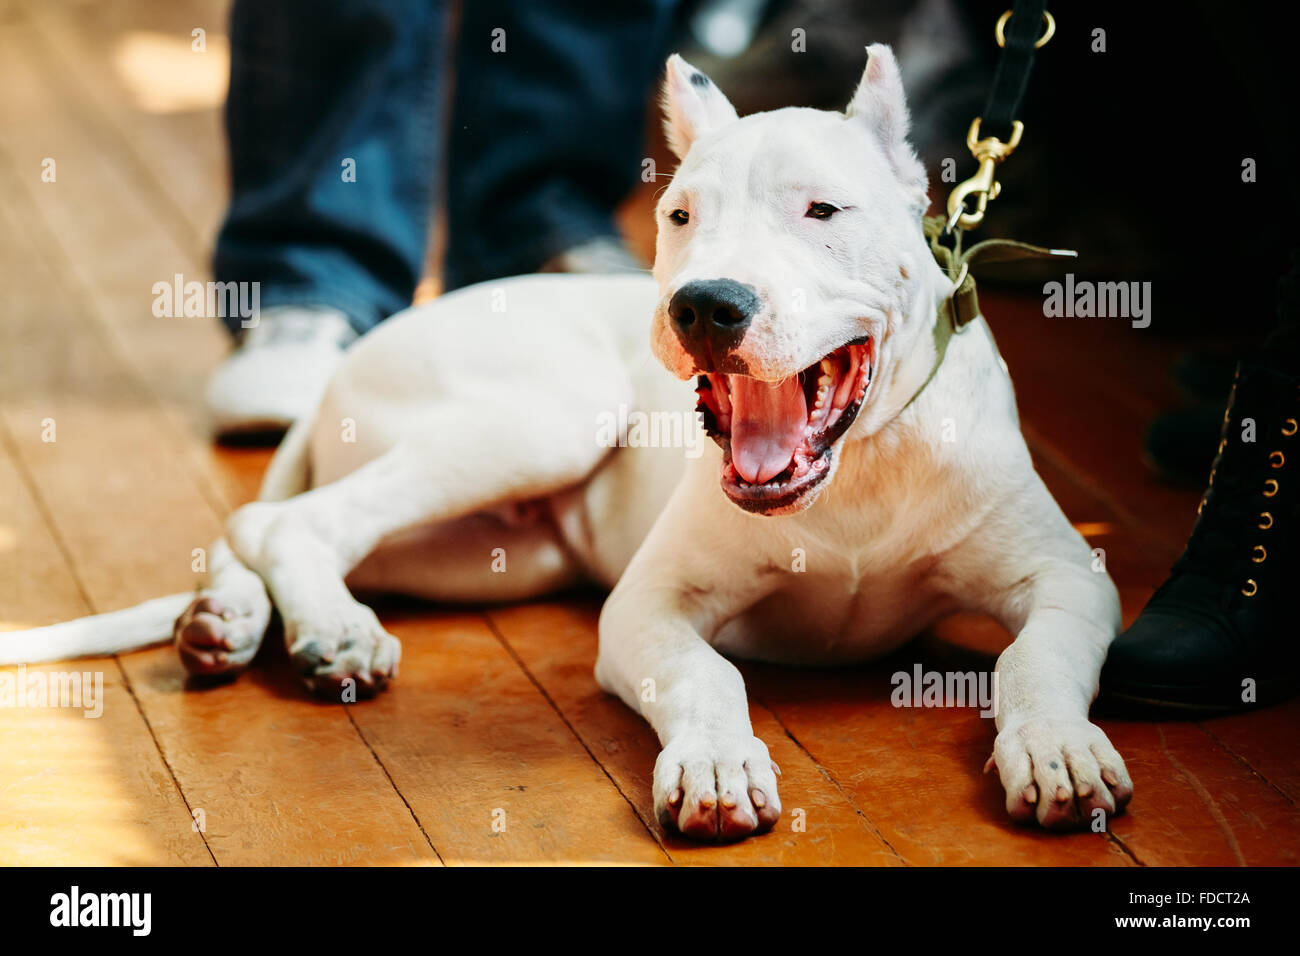 White puppy dog of Dogo Argentino also known as the Argentine Mastiff is a large, white, muscular dog that was developed - Stock Image